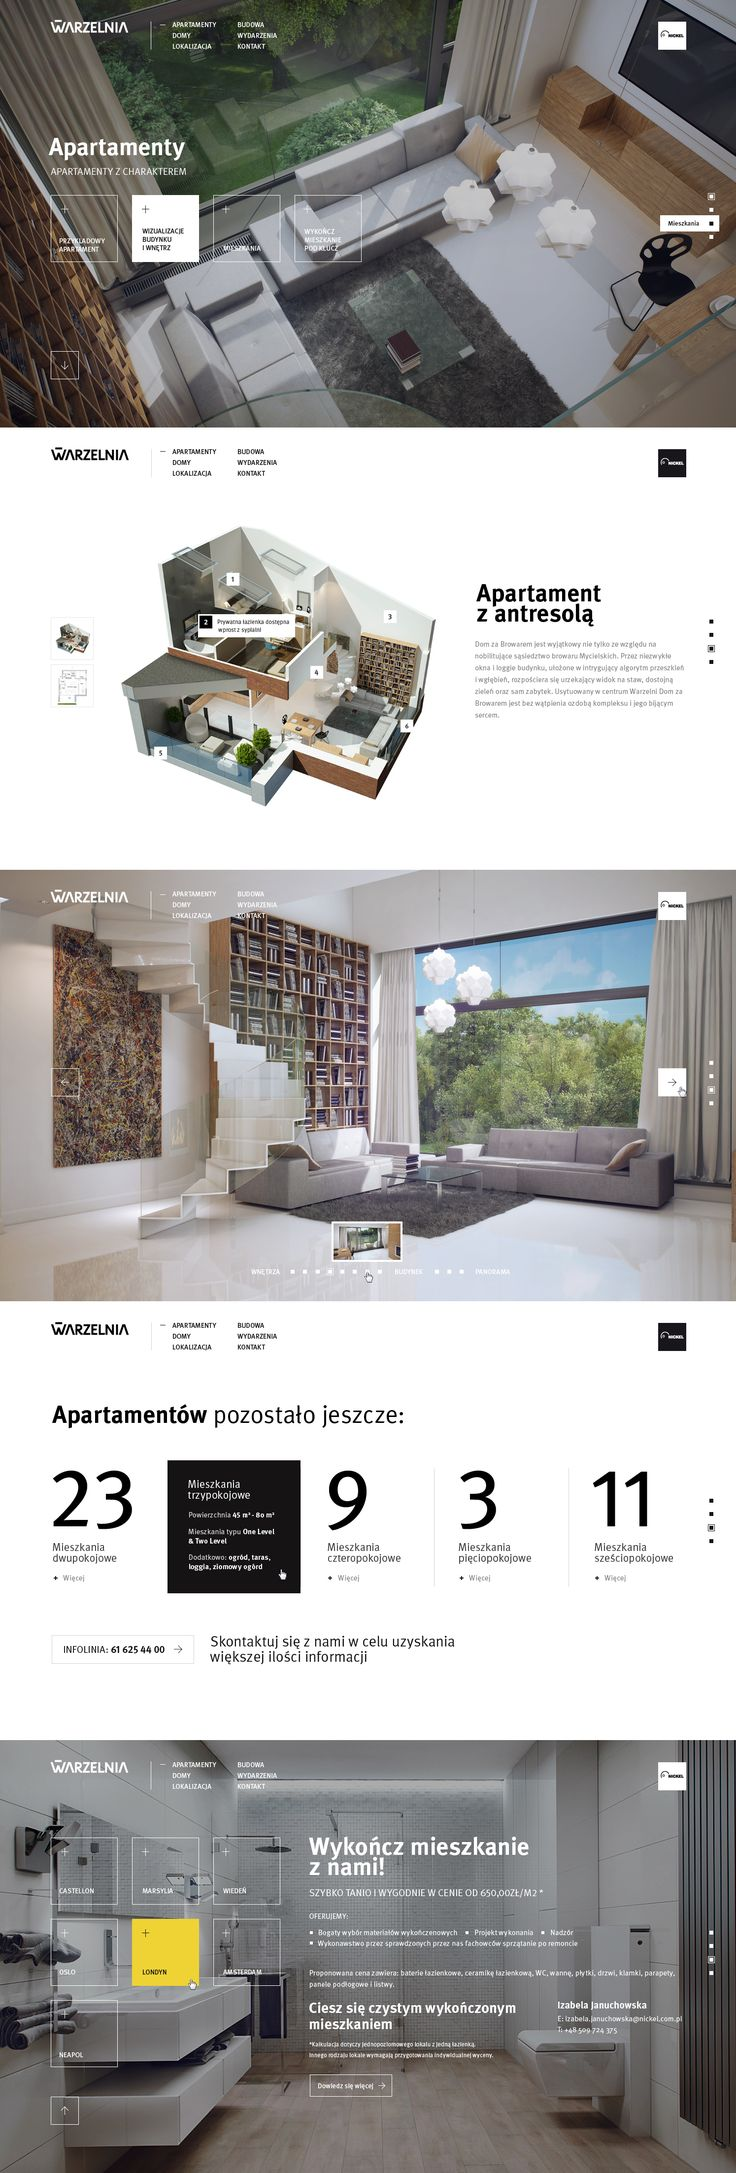 Web Desgn Like The Photo Style And Screen Break Up Of Photographic White Informational Chunks New Warzelnia By Micha Jakobsze Via Behance